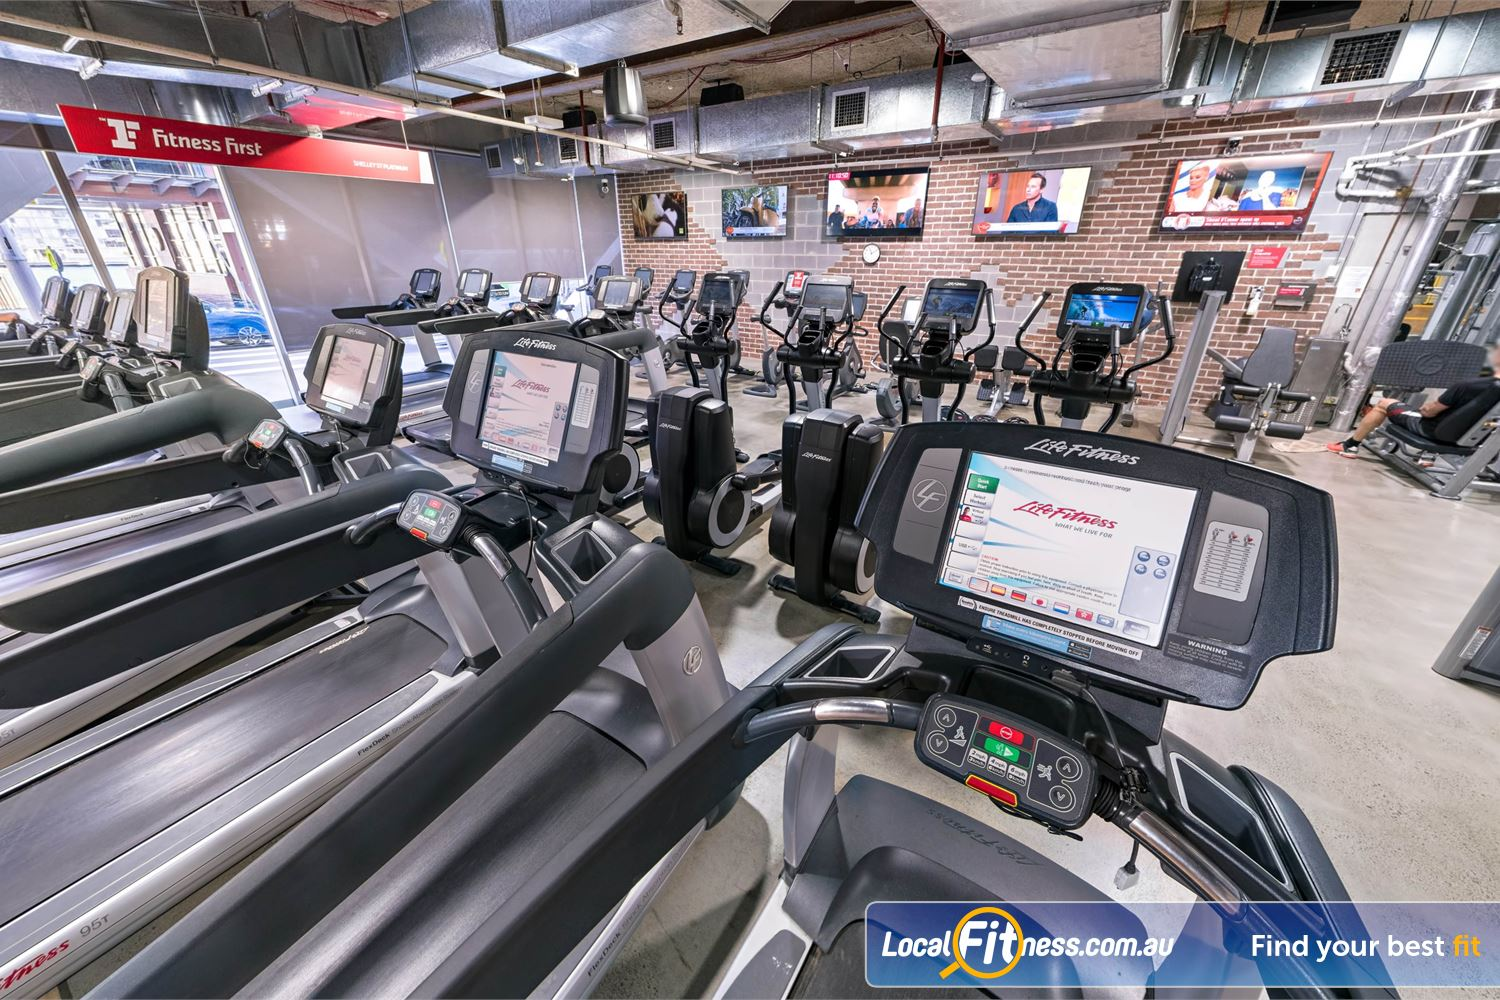 Fitness First Platinum Shelley St Sydney Welcome to the innovative Fitness First 24/7 Sydney gym at Shelley St.